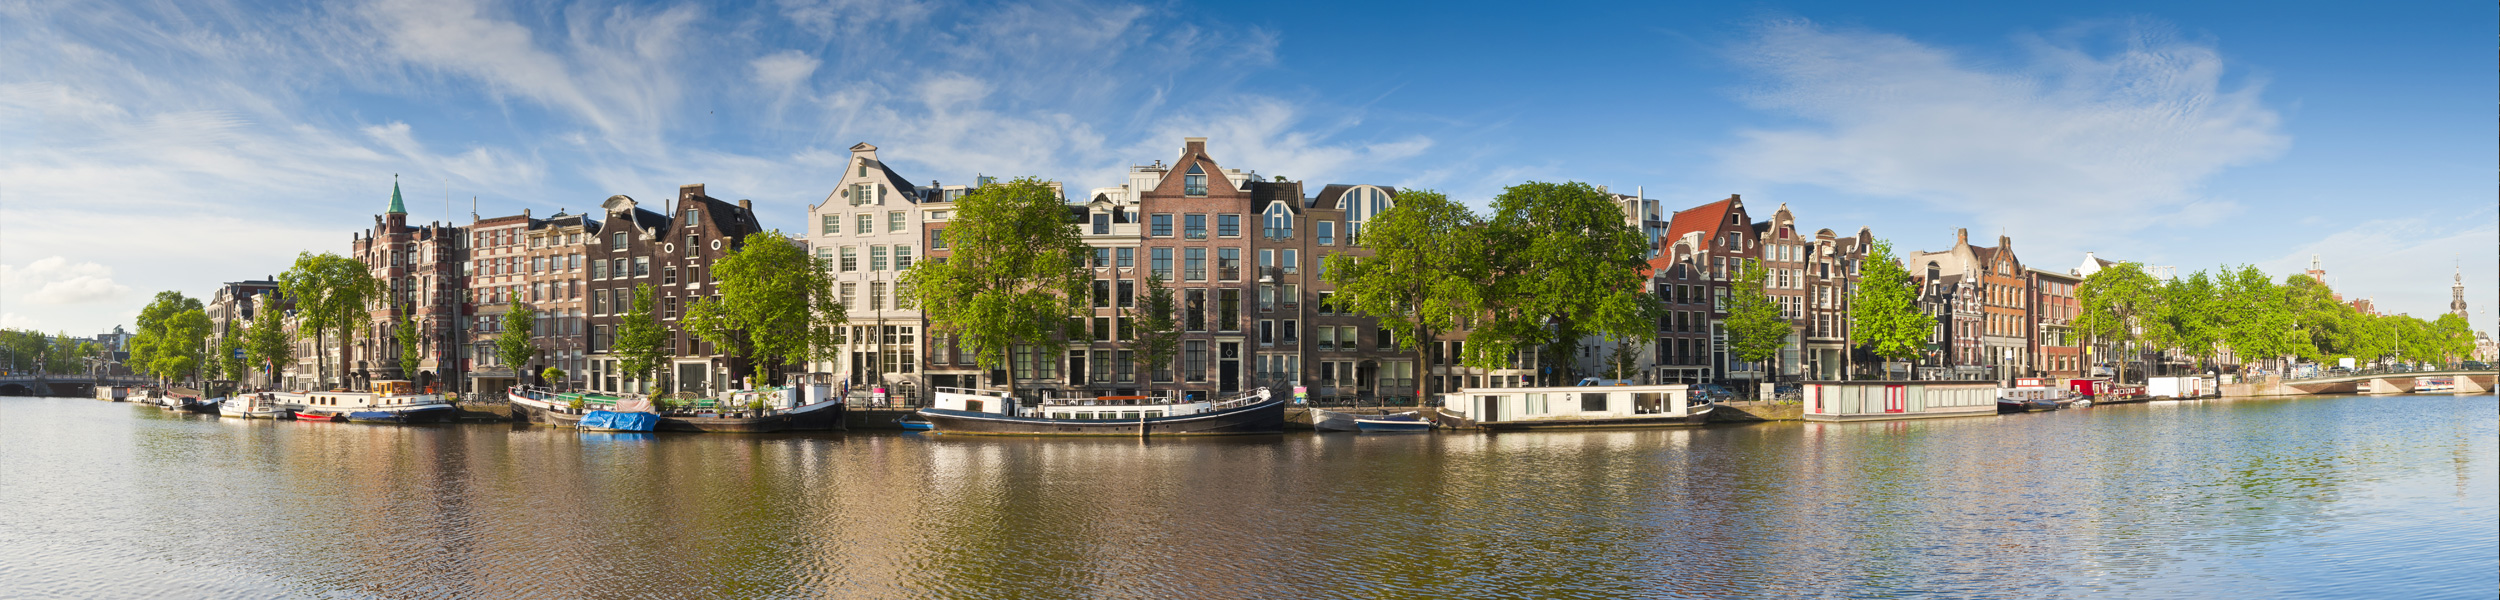 Network Engineer Amsterdam, The Netherlands